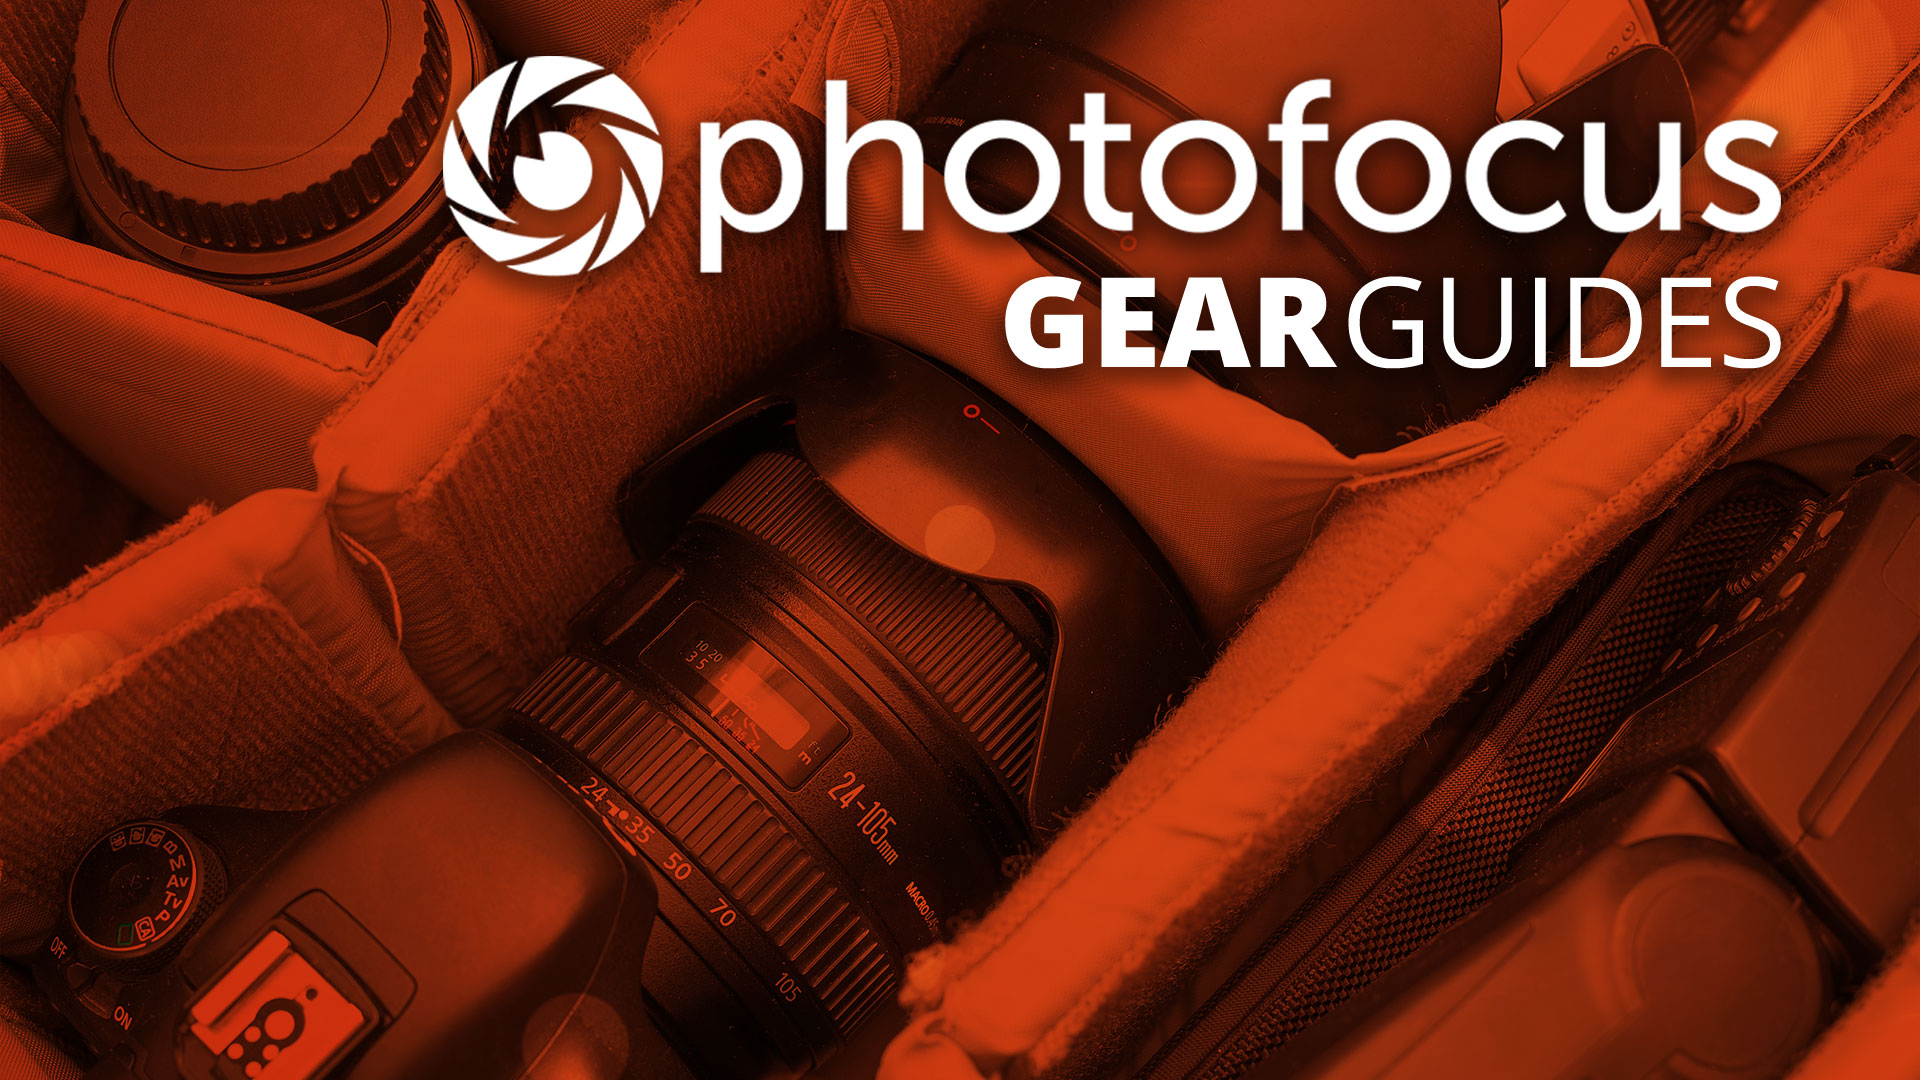 gearguides